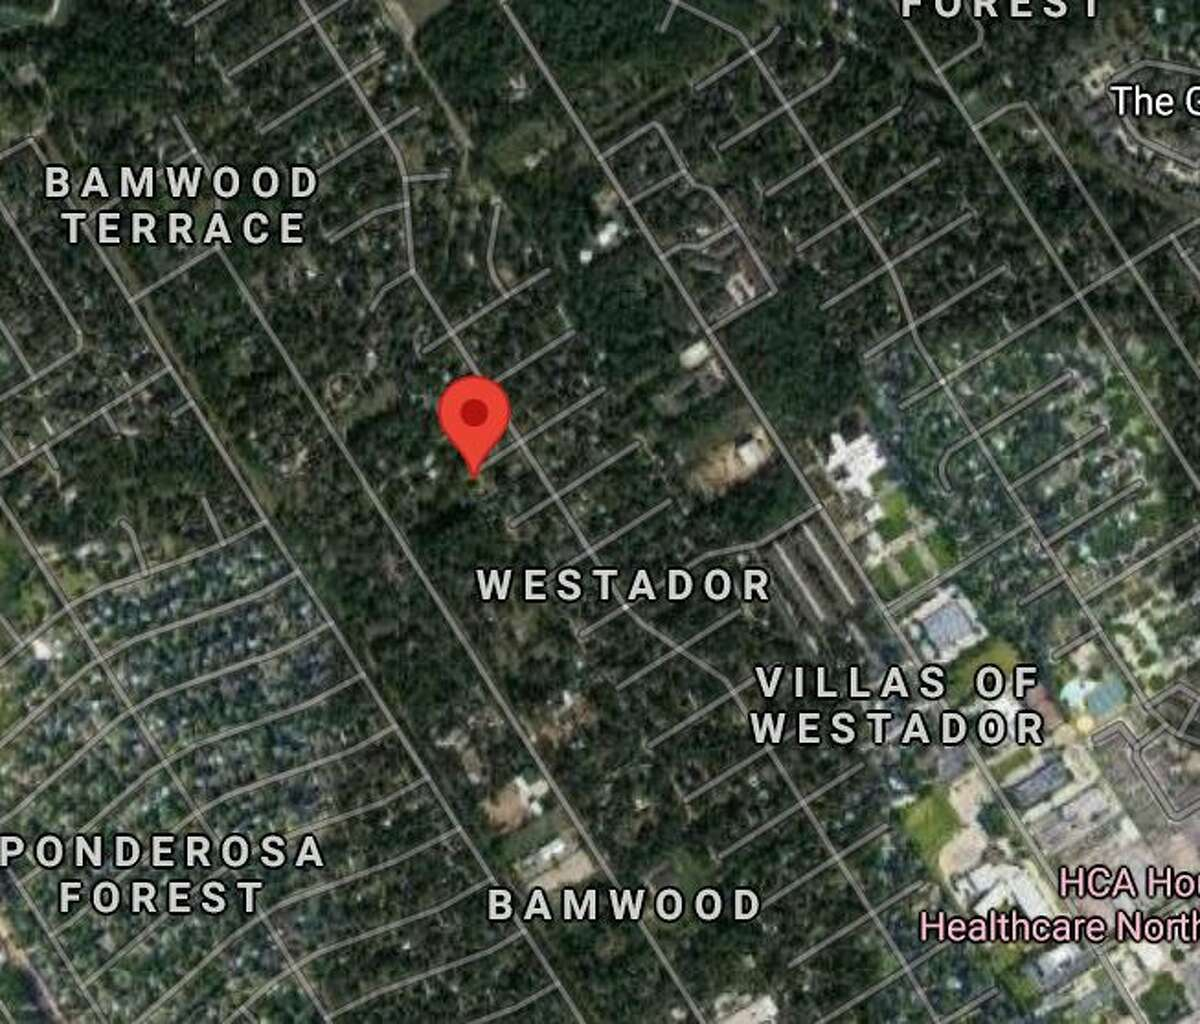 Deputies responded to the 1200 block of Baltic Lane near Cypress Station where they found a 29-year-old man dead inside the doorway of the residence with multiple gunshot wounds, Wolfford said.